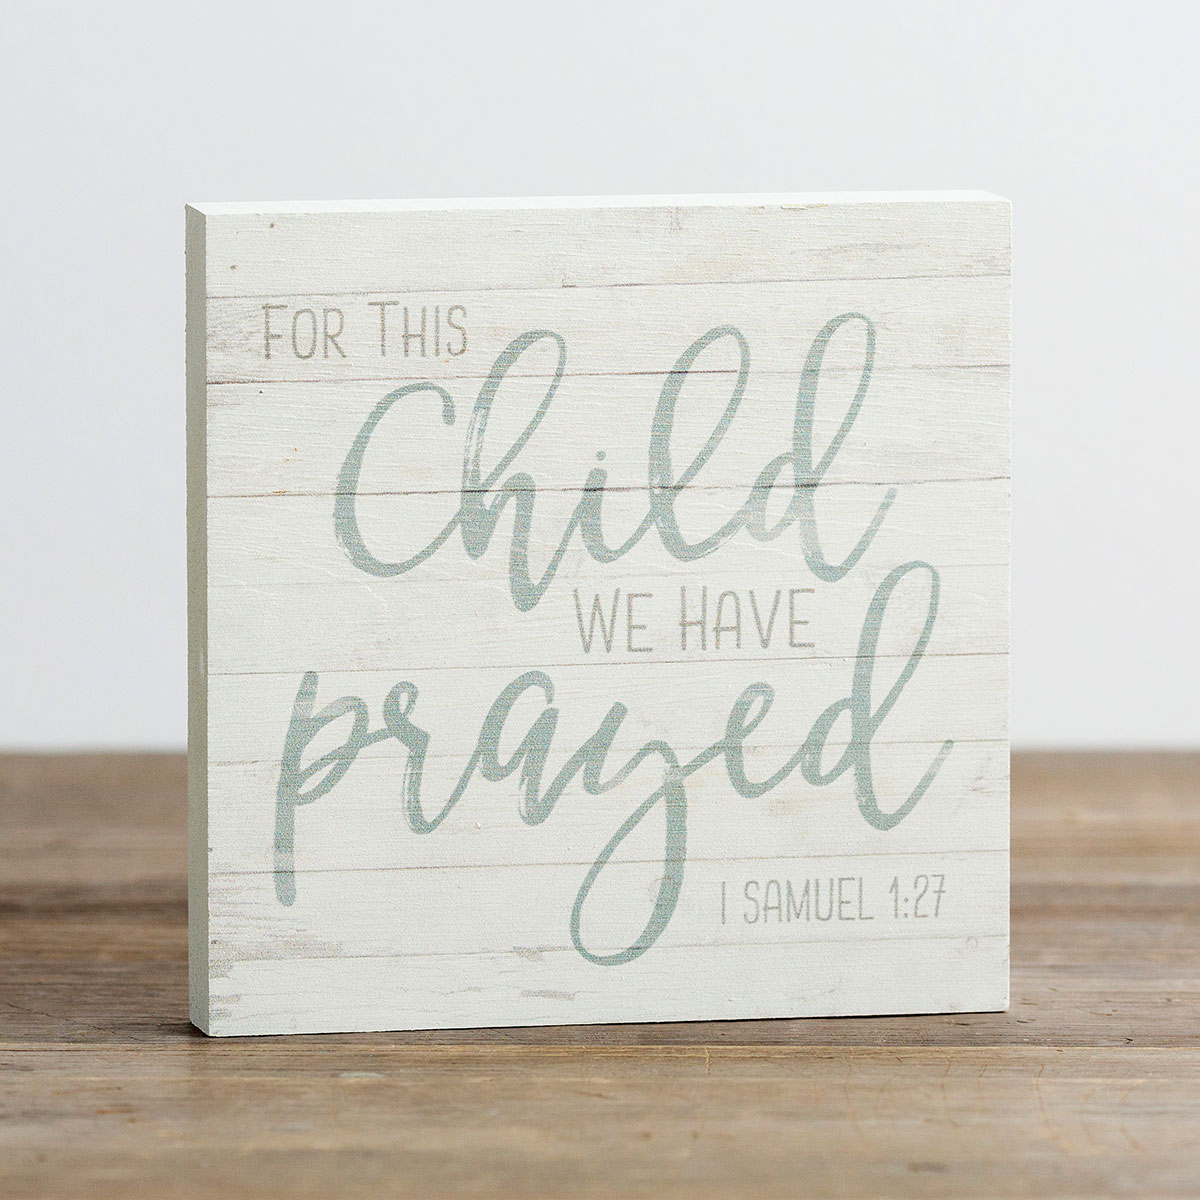 For This Child We Have Prayed - Small Wooden Block